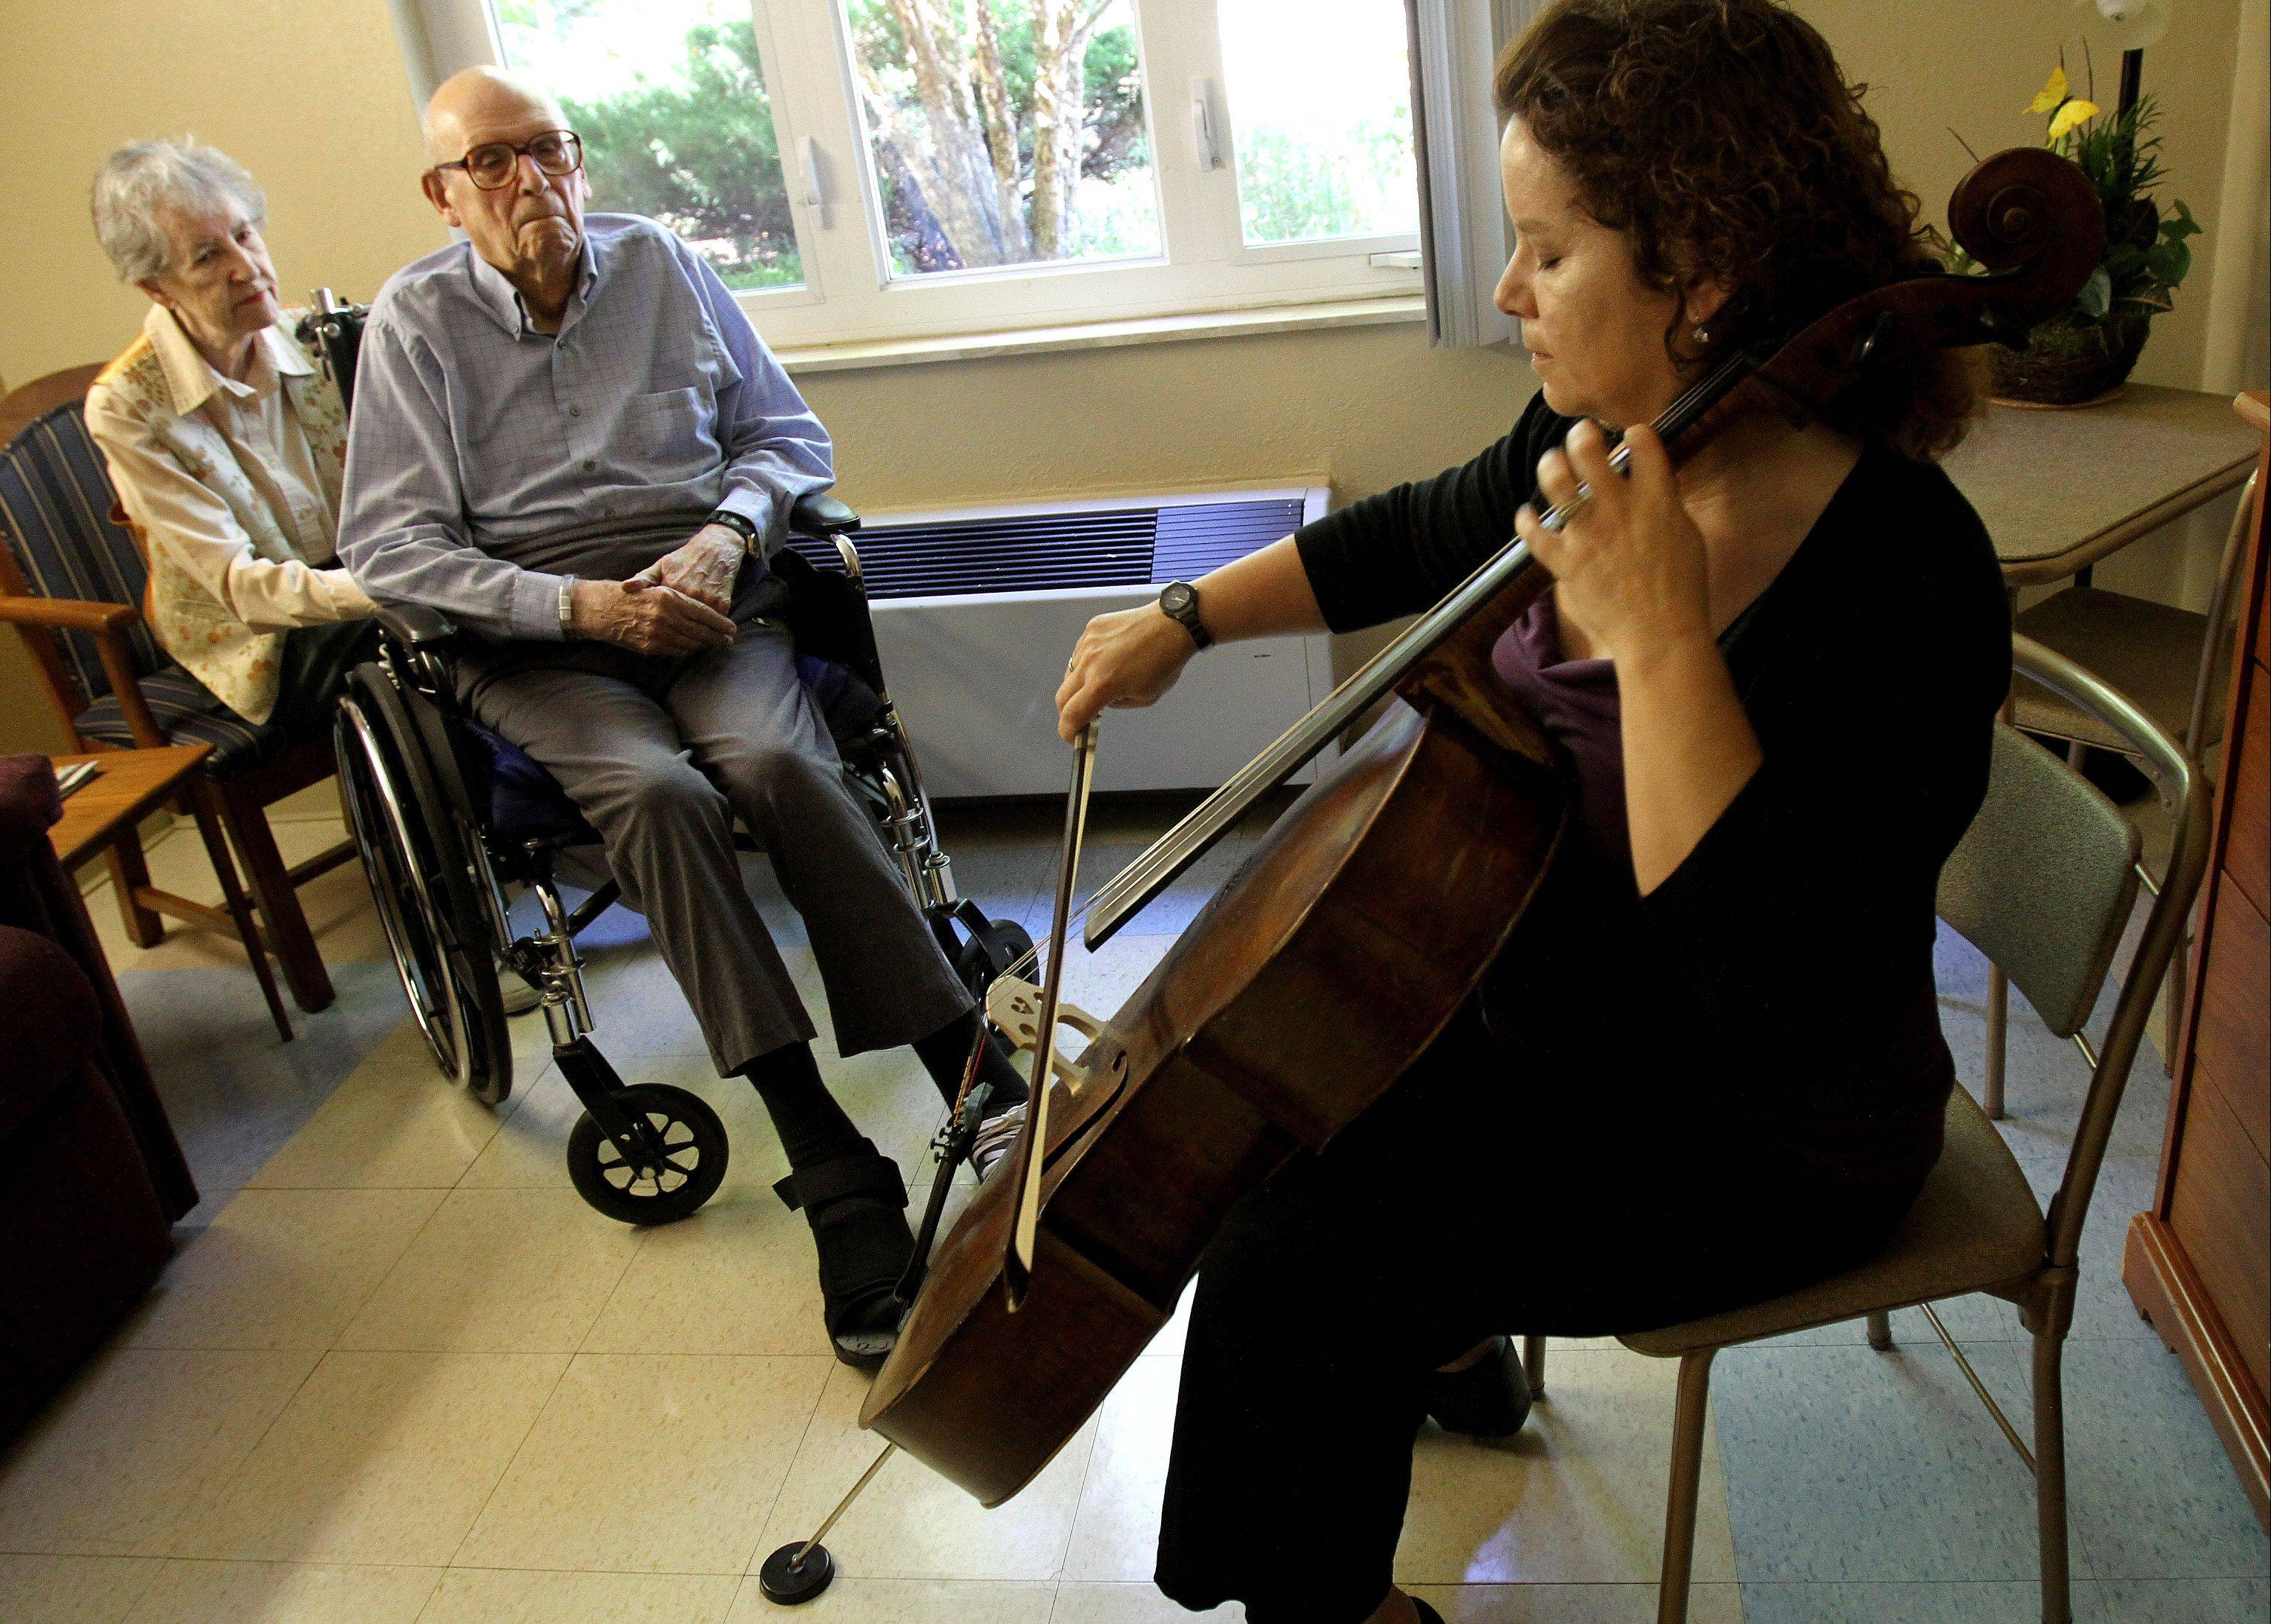 Cellist Pippa Downs of Wheaton performs once a month for residents at Wynscape Skilled Nursing and Rehabilitation in Wheaton. She also provides individual performances for those who don't get out of their rooms often, those suffering severe pain or anxiety, or those who may be terminally ill.